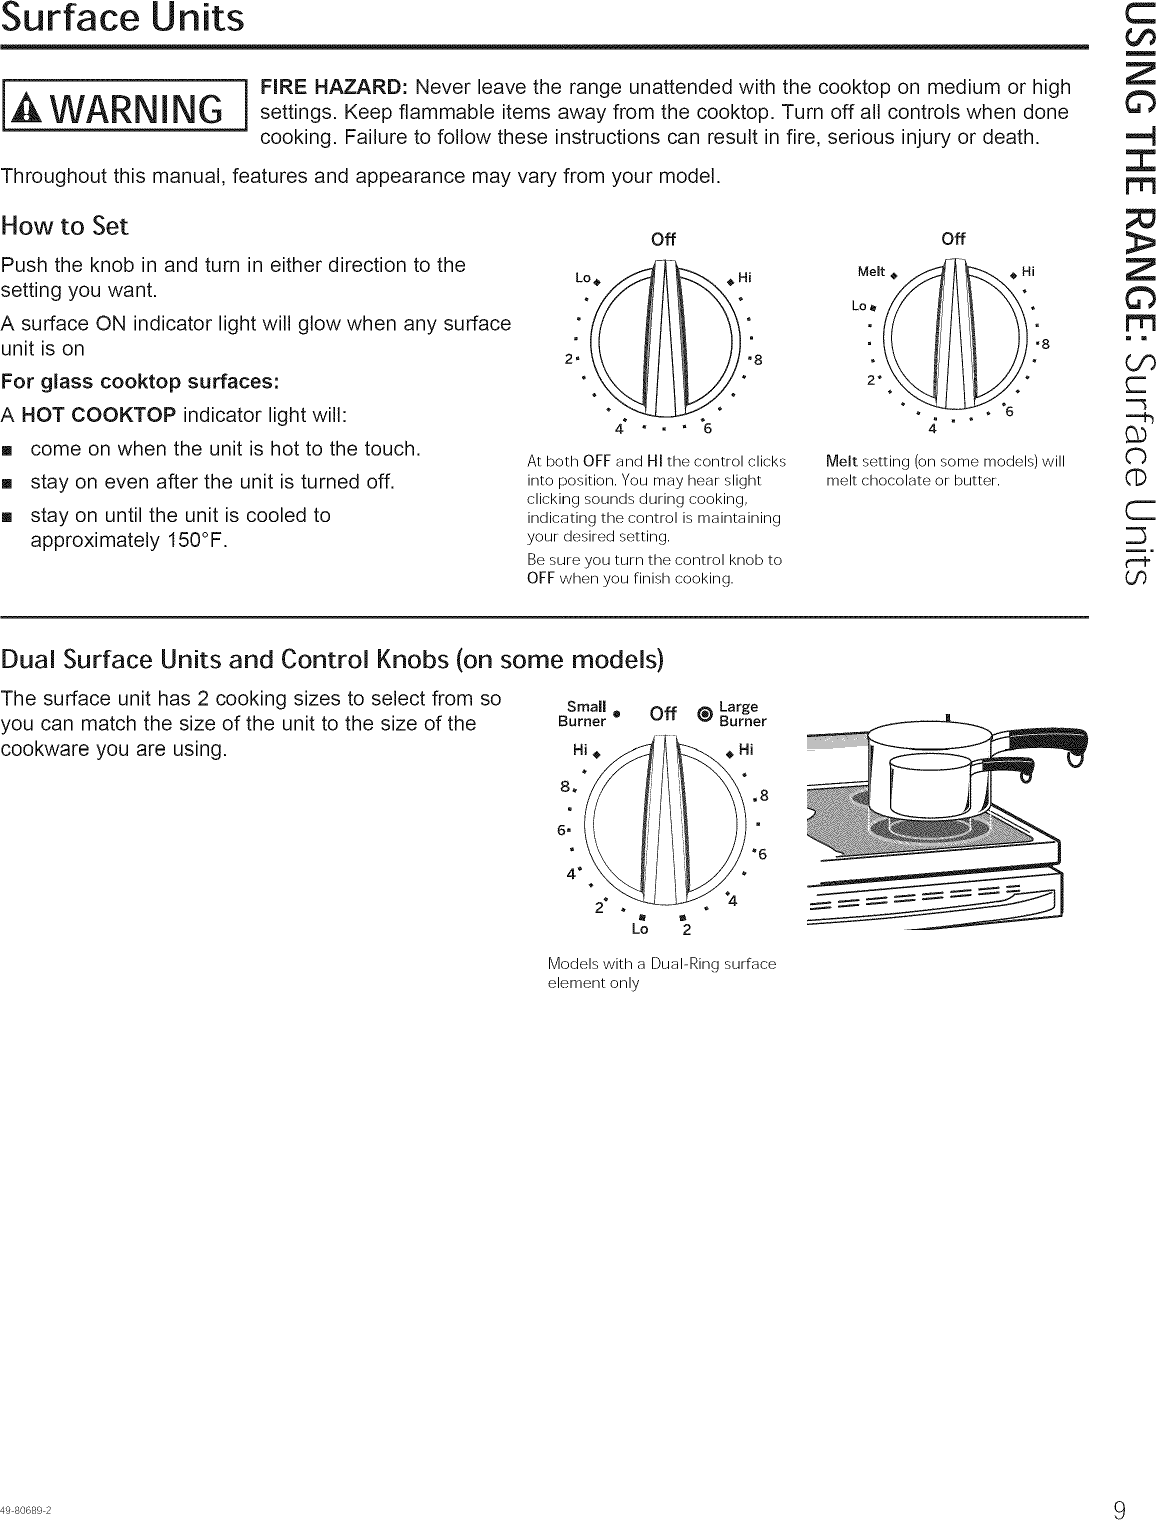 Wiring Diagram Jb640 Ge Manuals For Stoves Trusted Oven Schematic Jbp24 Illustration Of U2022 Stove Switch